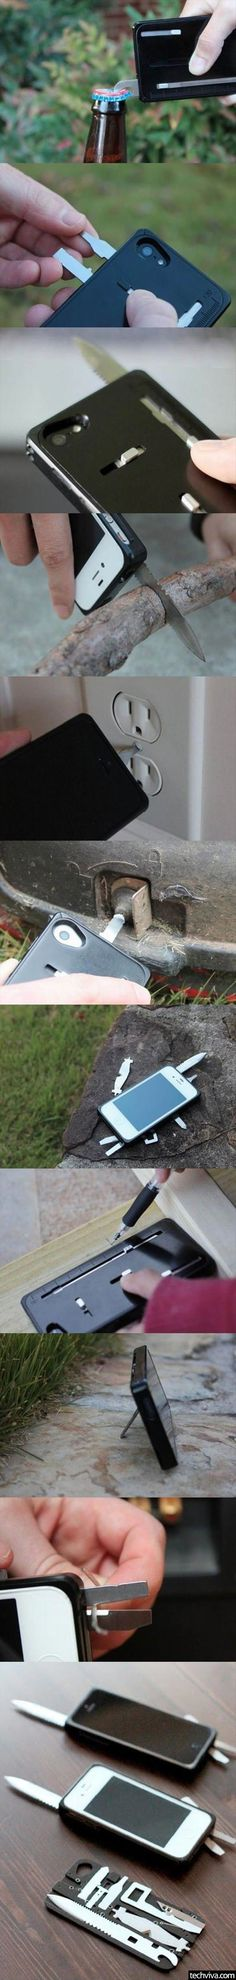 TaskOne iPhone Case - http://99viral.com/simple-ideas-that-are-simply-genius-part-1/